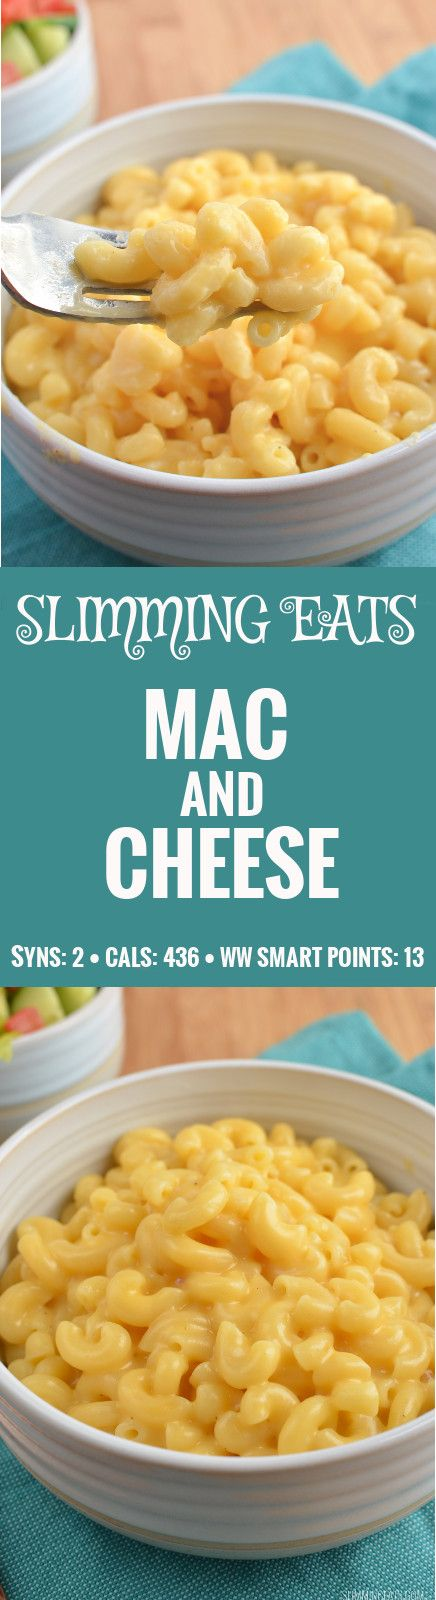 Slimming Eats Quick Mac and Cheese - gluten free, vegetarian, Slimming World and Weight Watchers friendly